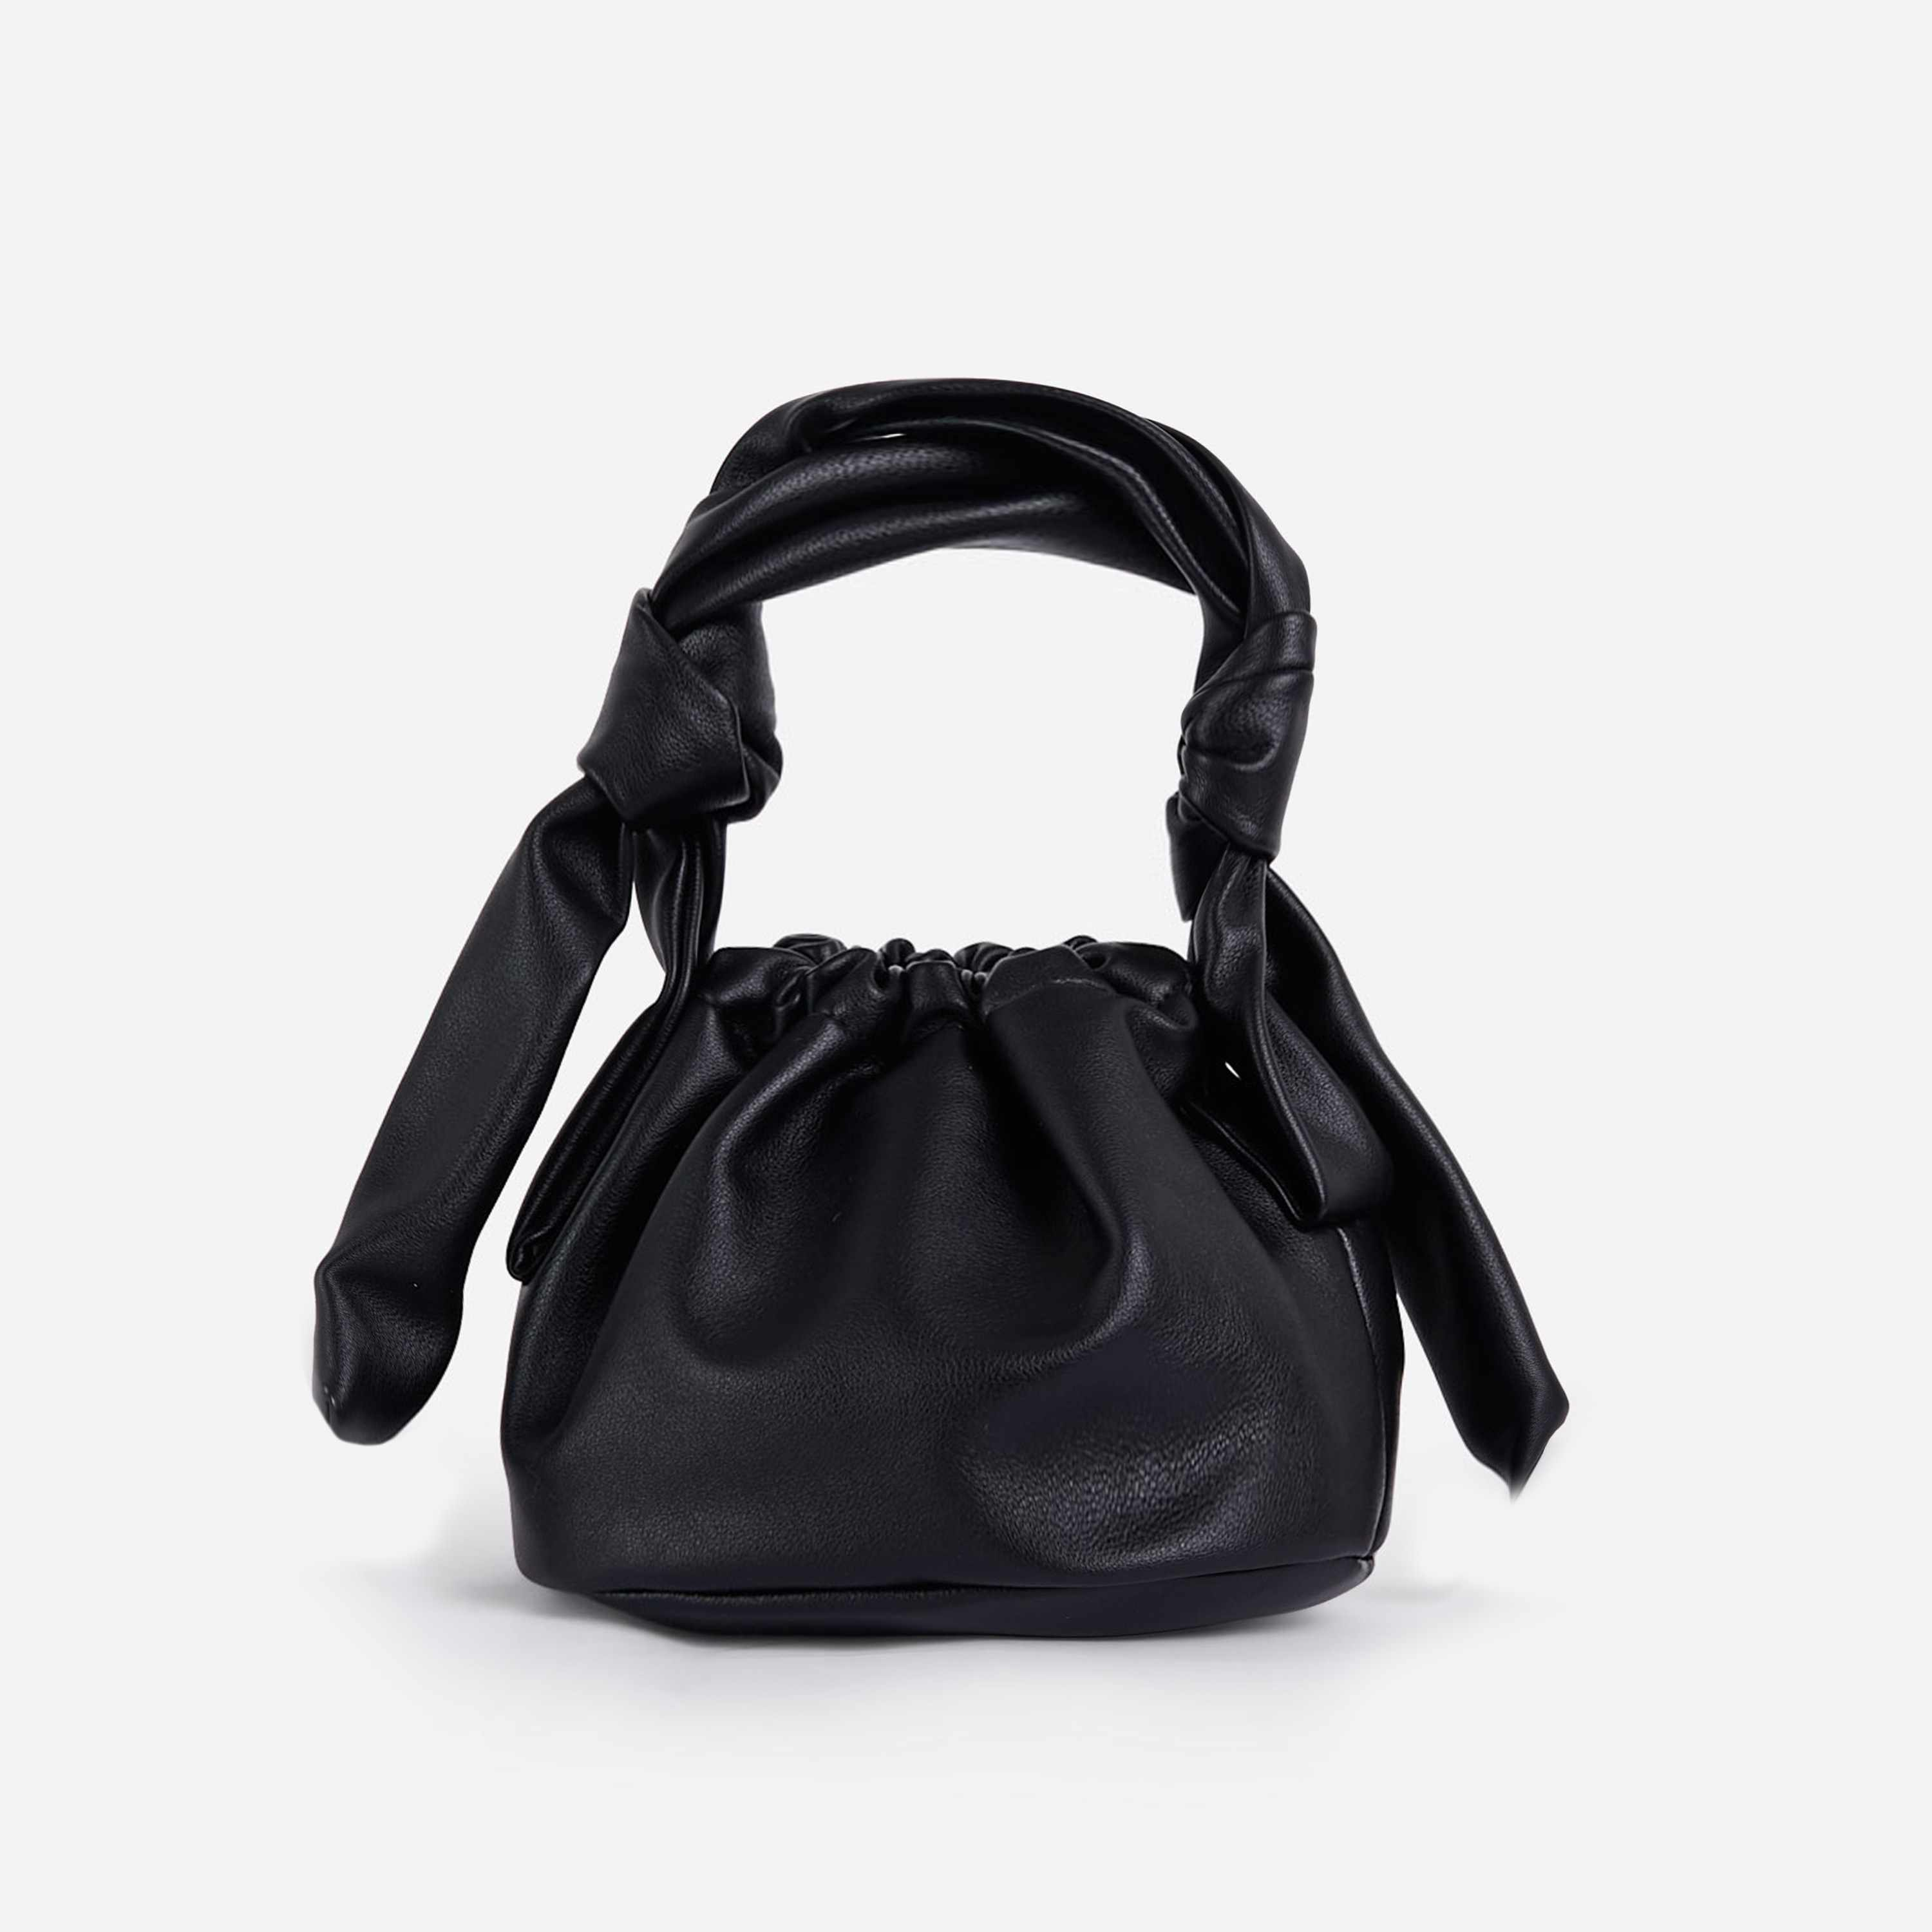 Cindy Knotted Detail Bucket Bag In Black Faux Leather